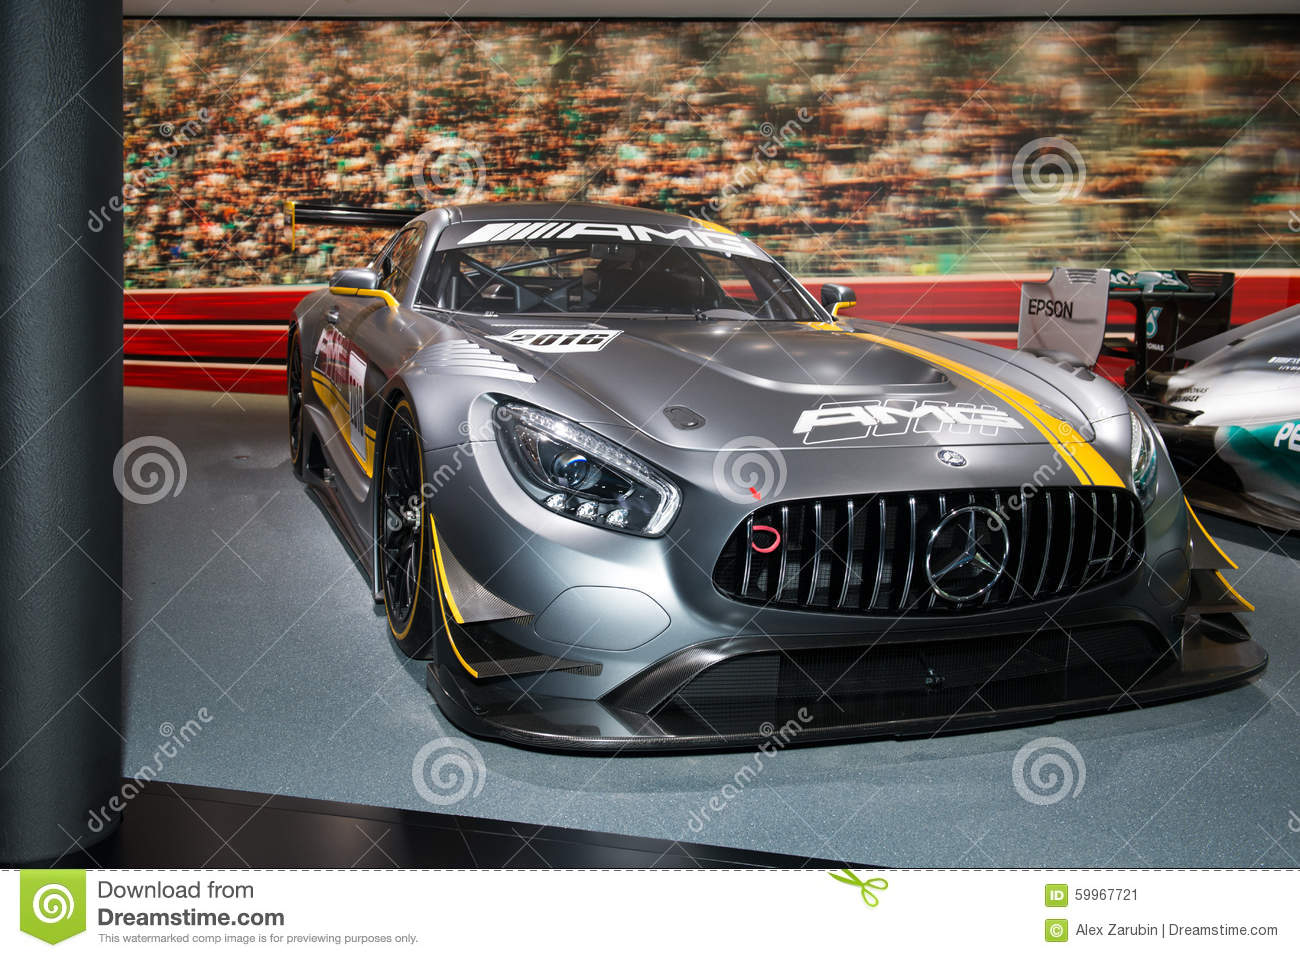 voiture de course de mercedes amg photo ditorial image 59967721. Black Bedroom Furniture Sets. Home Design Ideas